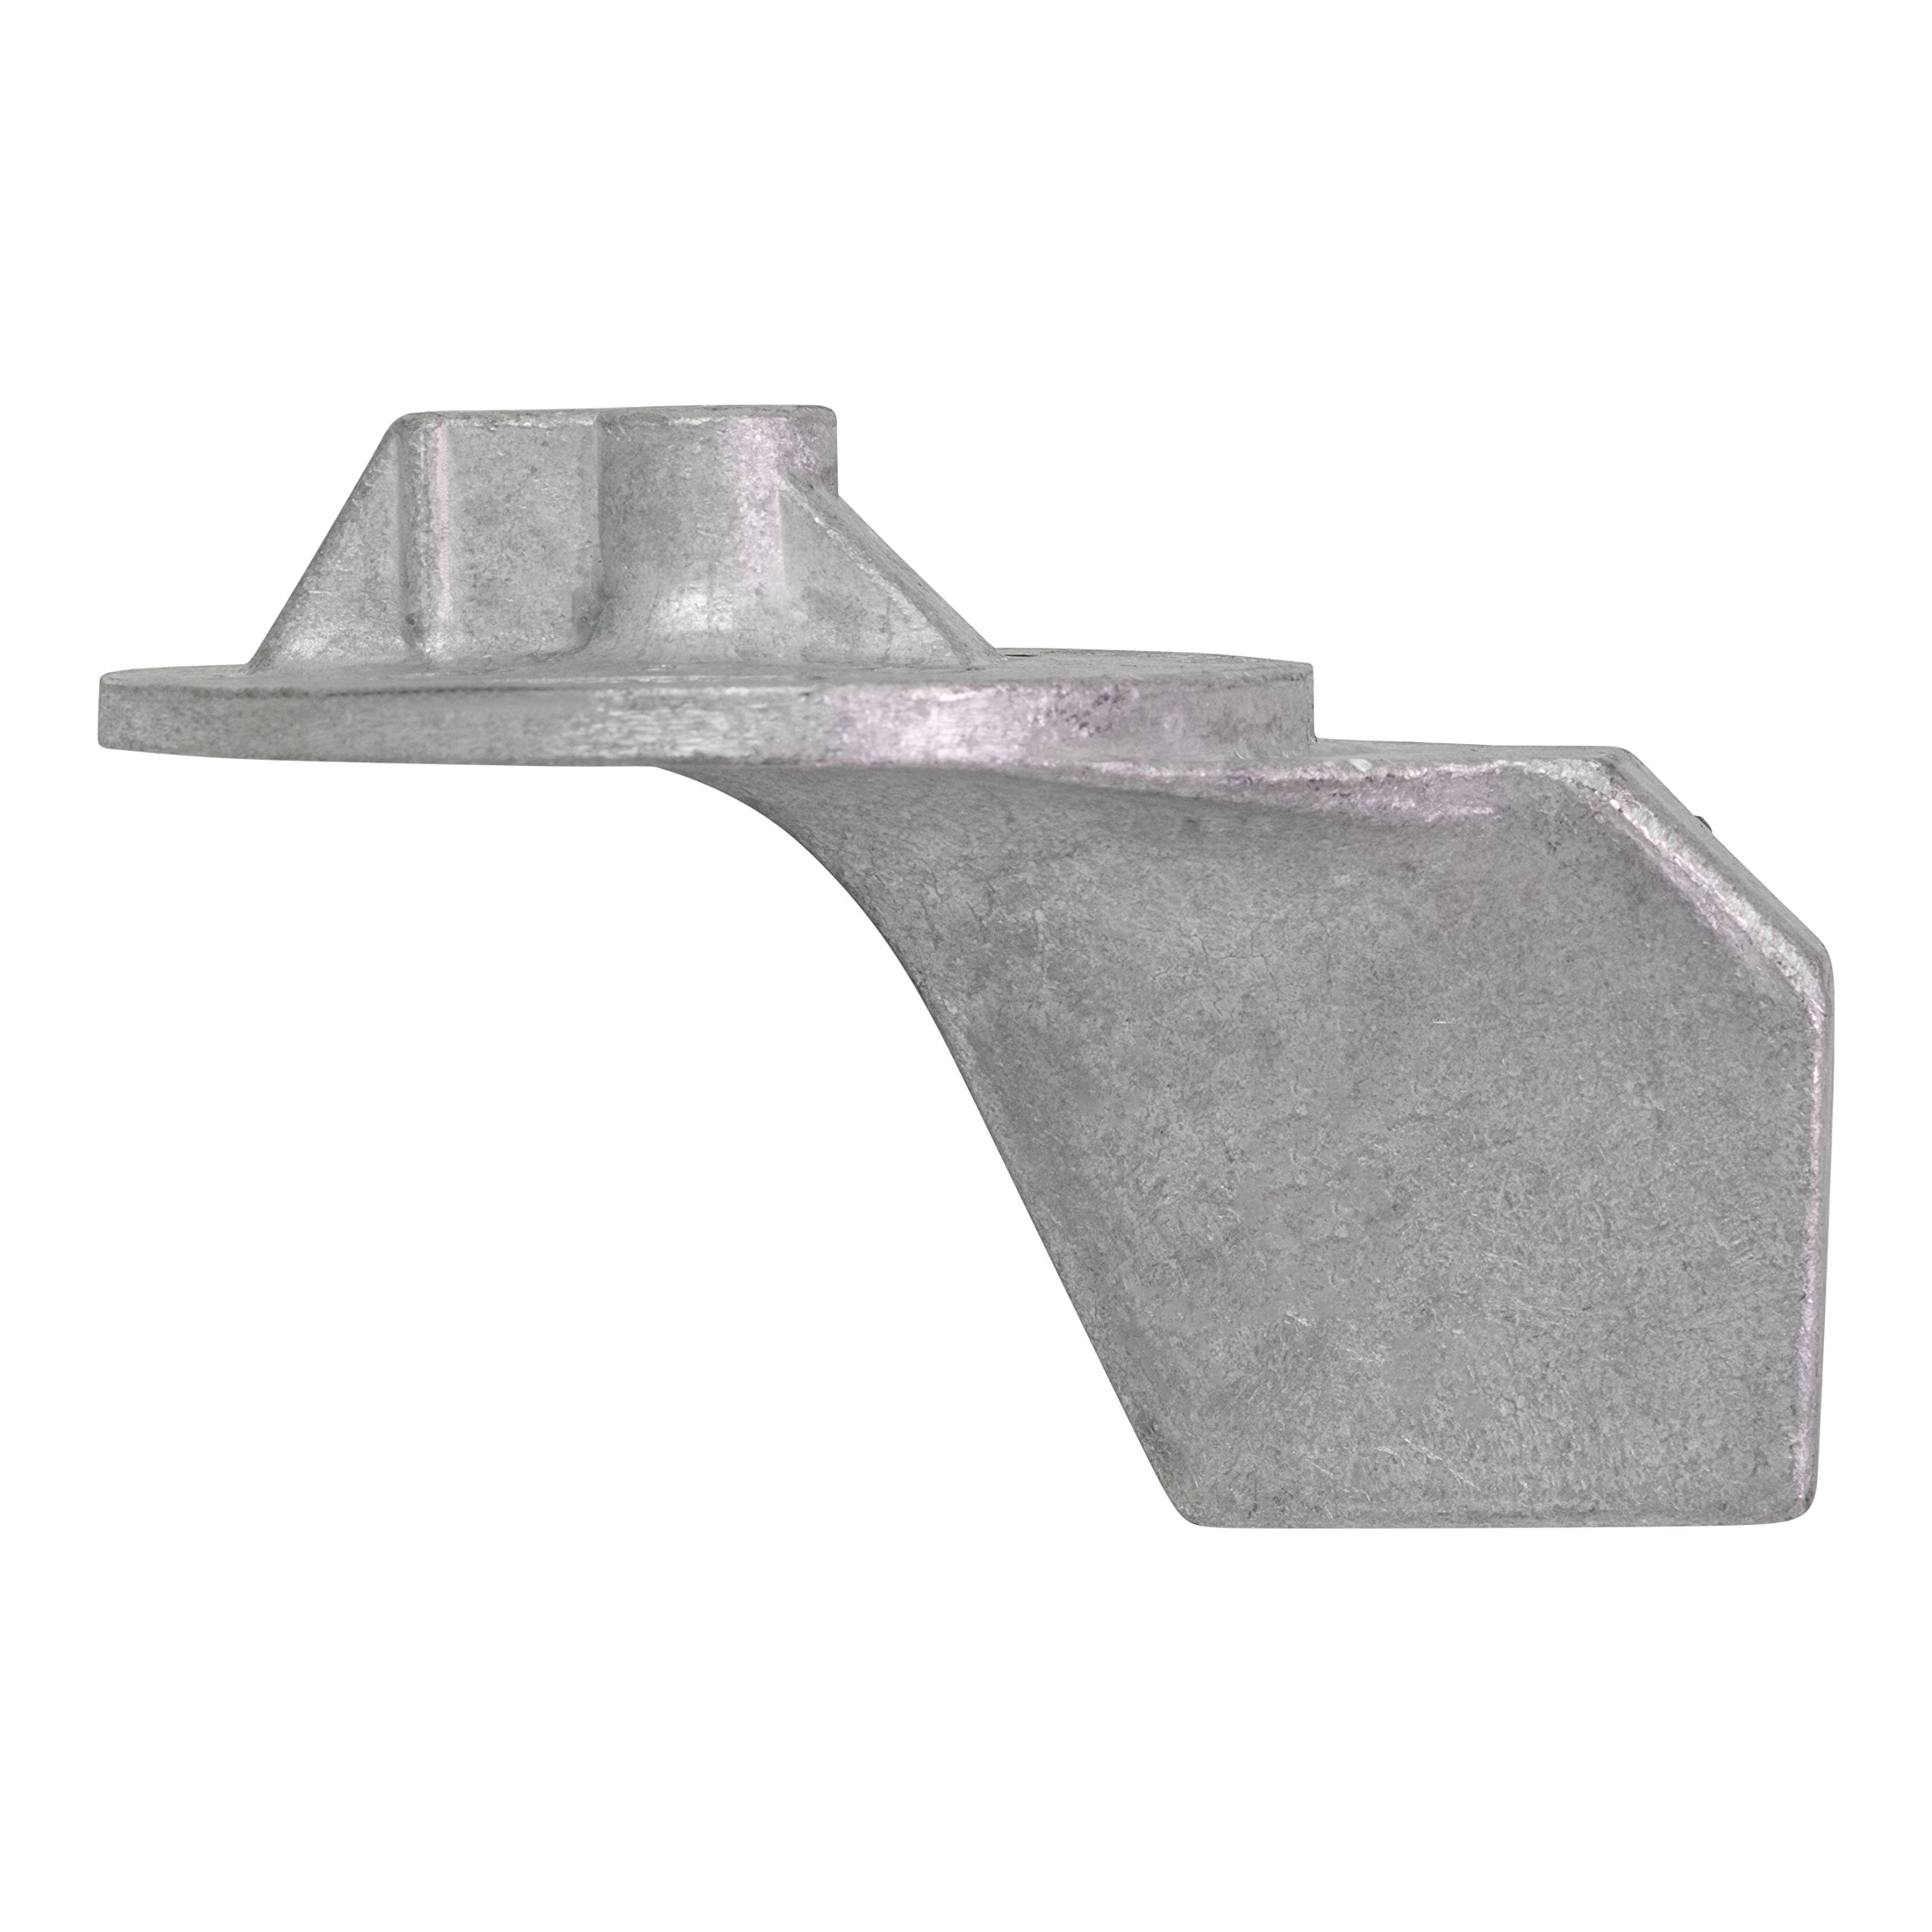 QuickSilver 822777Q1 Aluminum Trim Tab Anode - Mercury or Mariner Outboards and MerCruiser Stern Drives Using High Rake Propellers